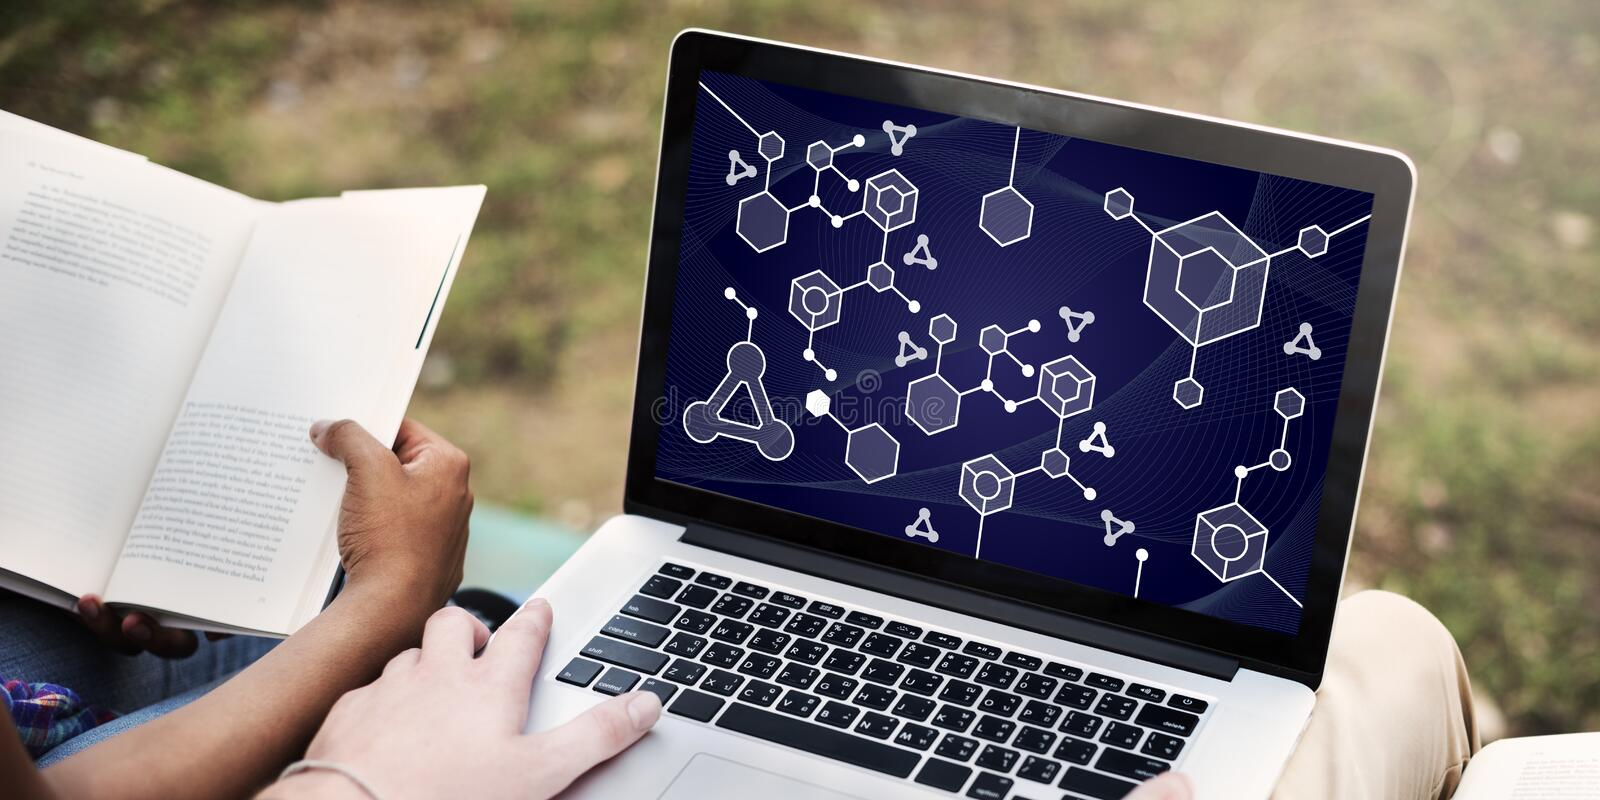 Molecular Structure Chemistry Science Experiment Concept royalty free stock photo